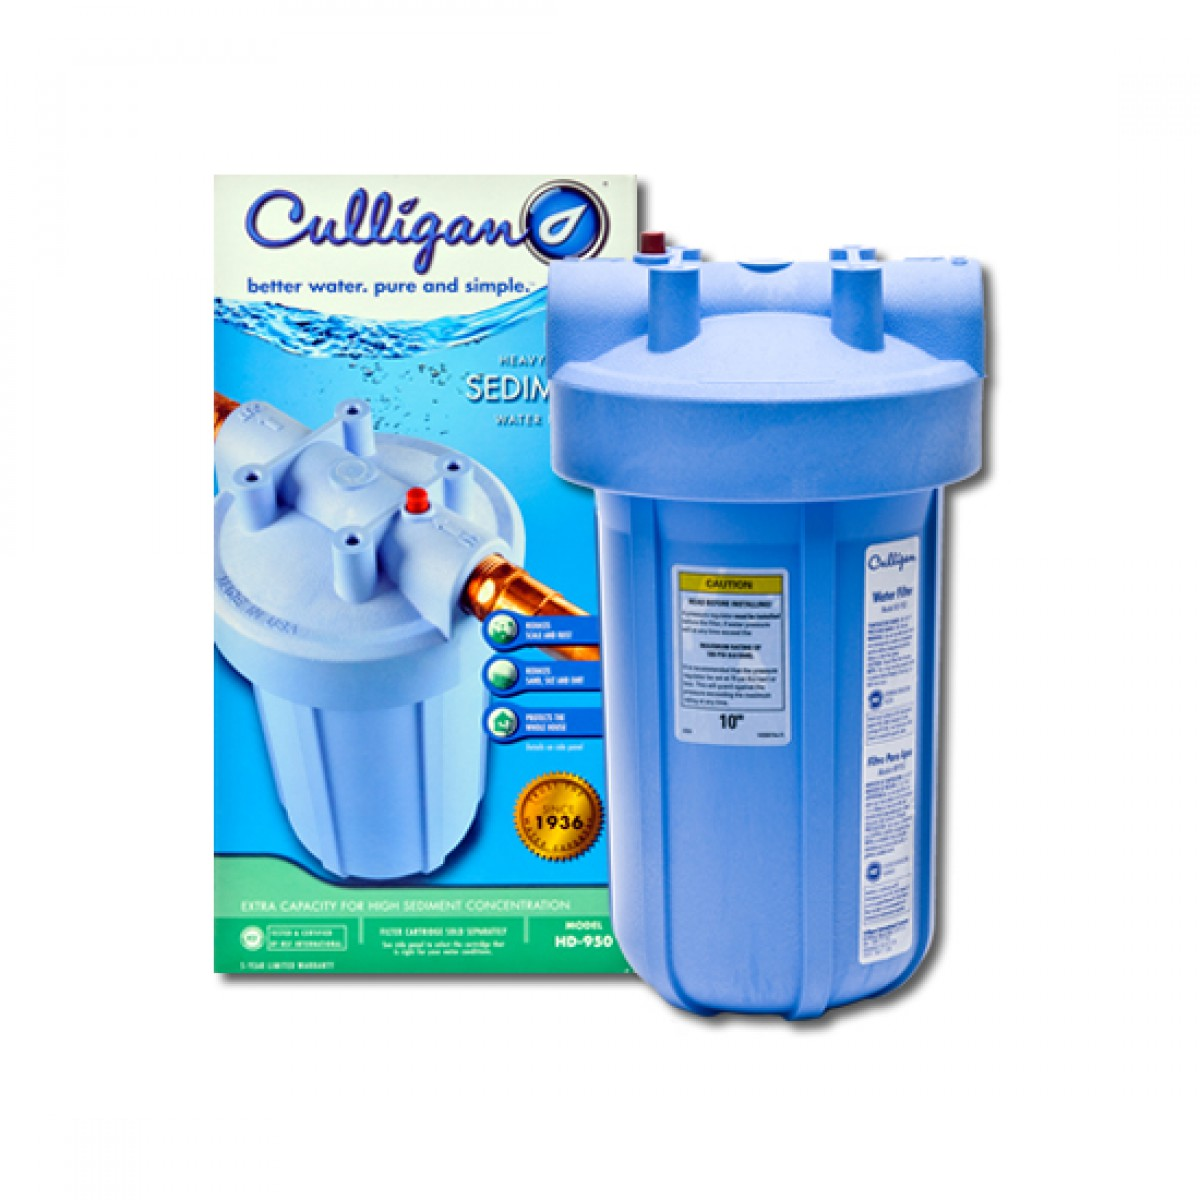 Culligan Hd 950 Whole House Water Filter